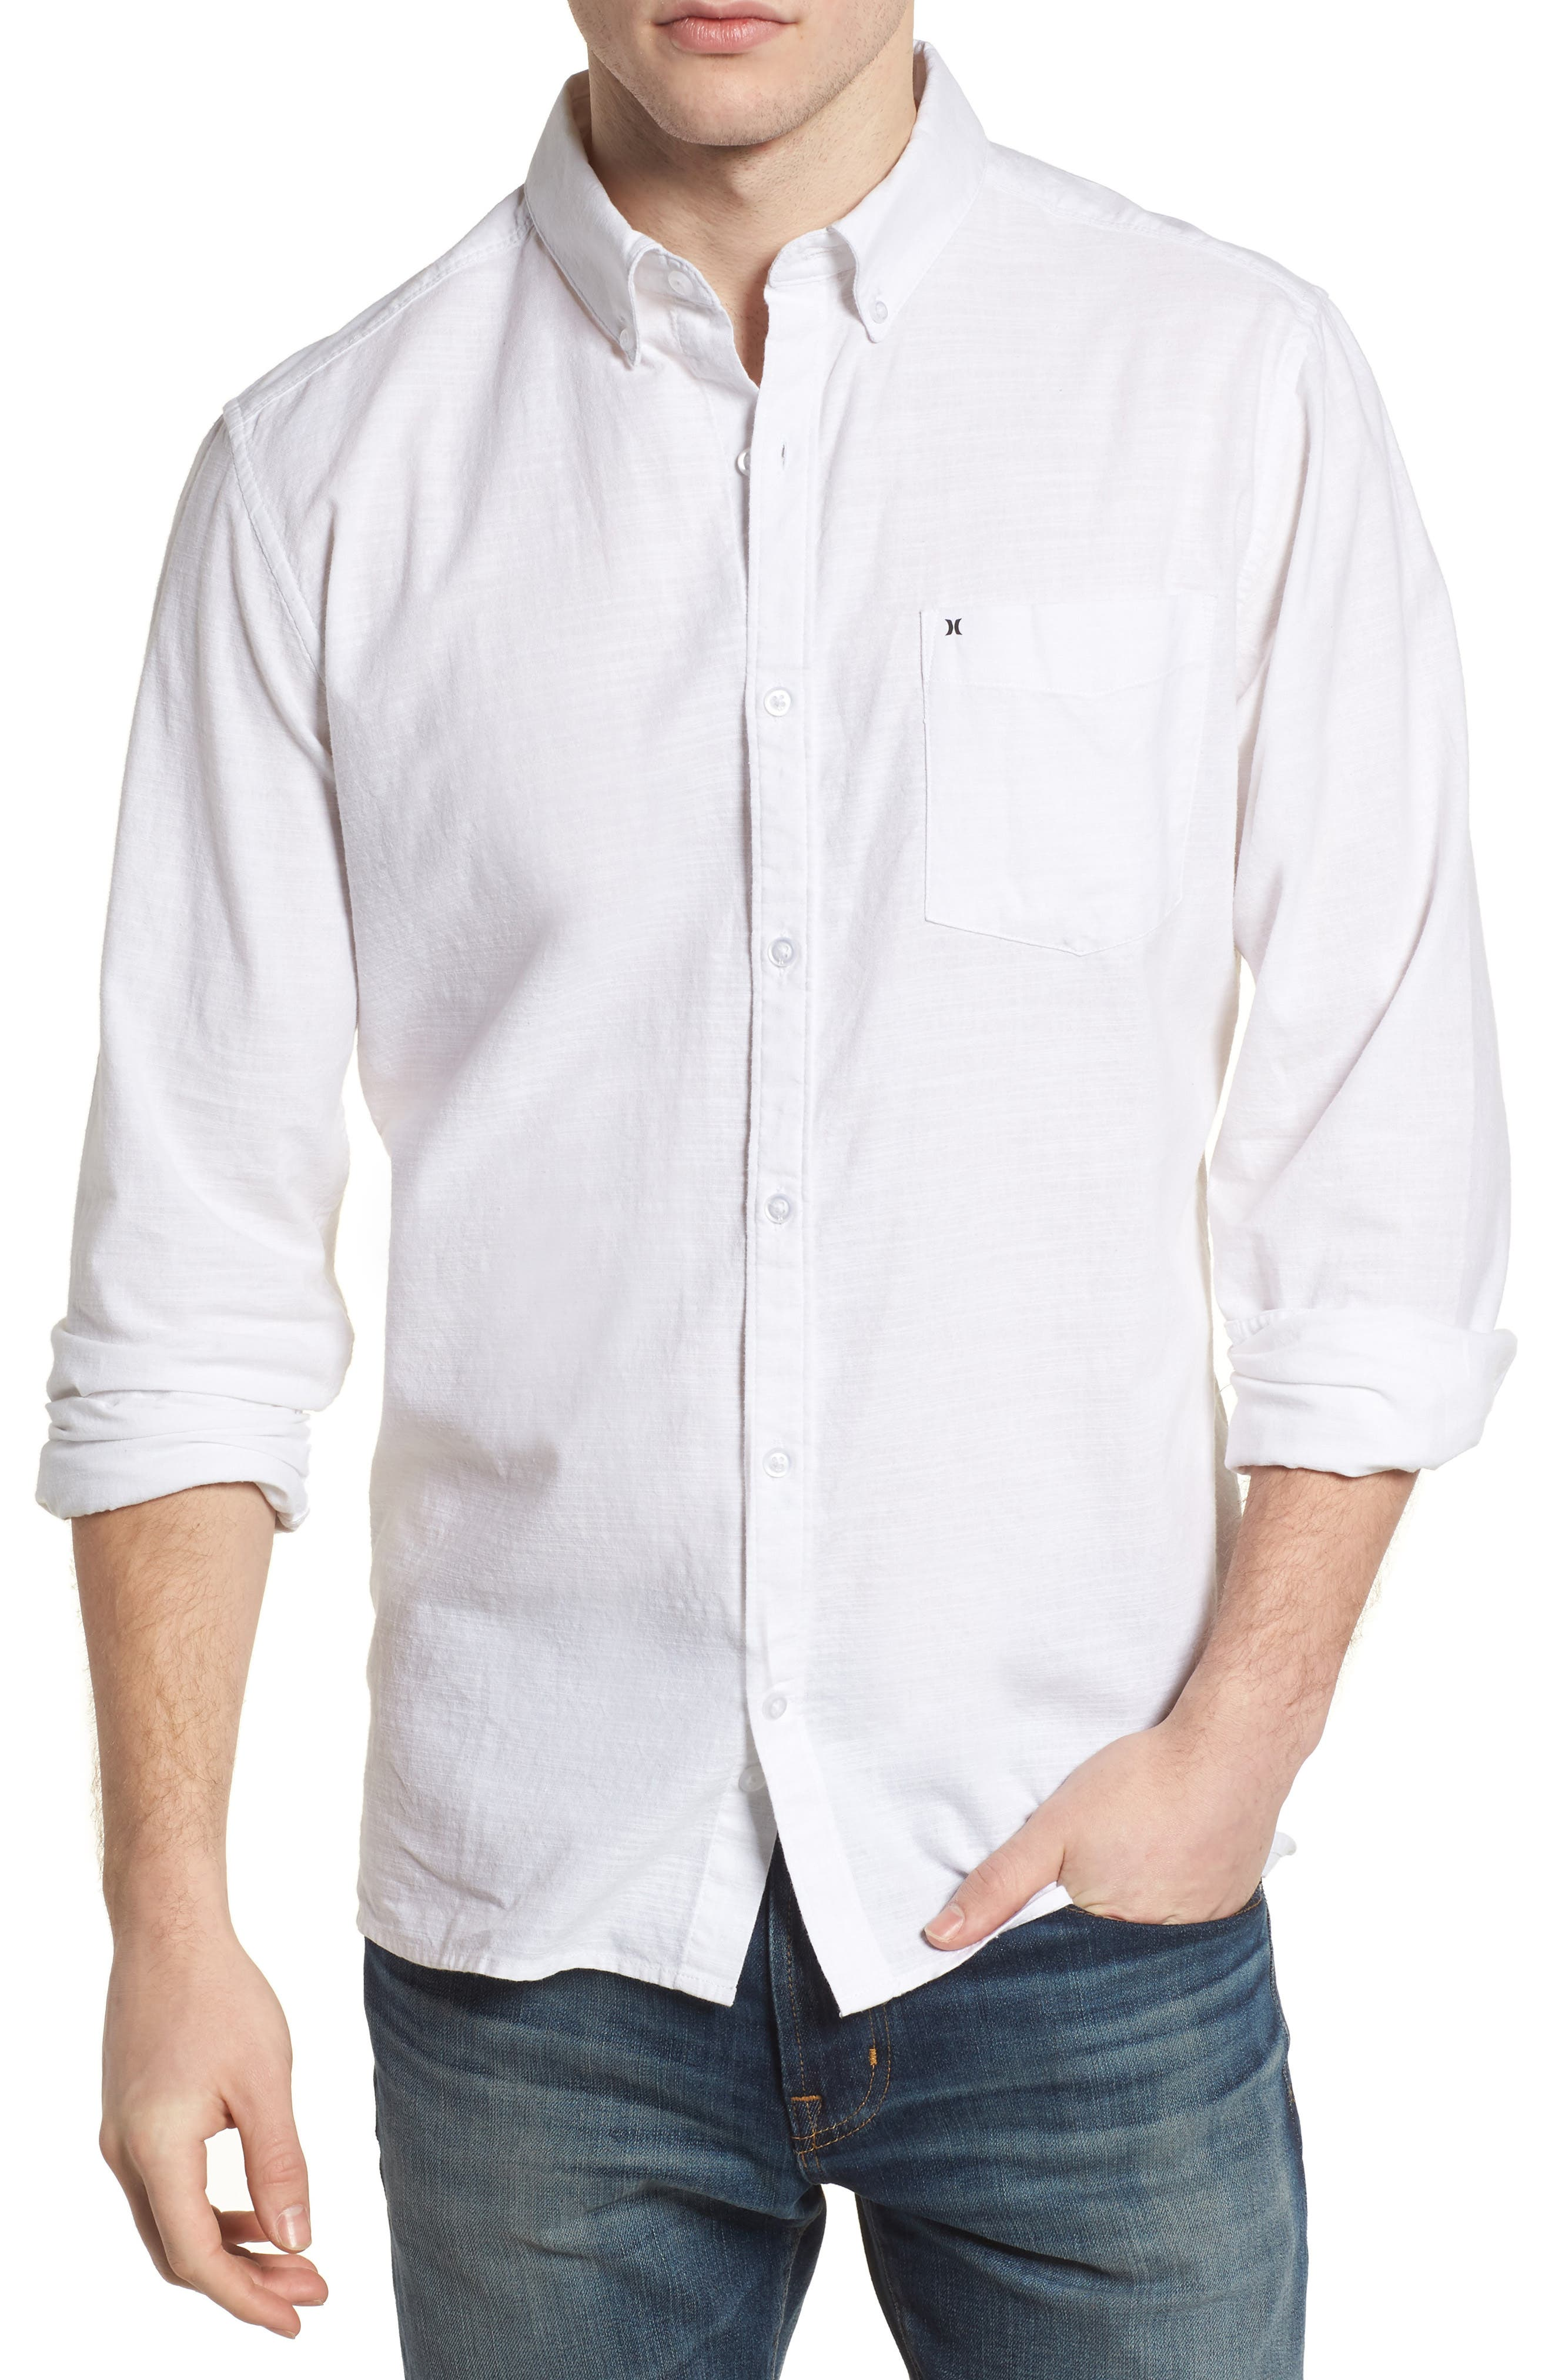 Alternate Image 1 Selected - Hurley One & Only 2.0 Woven Shirt